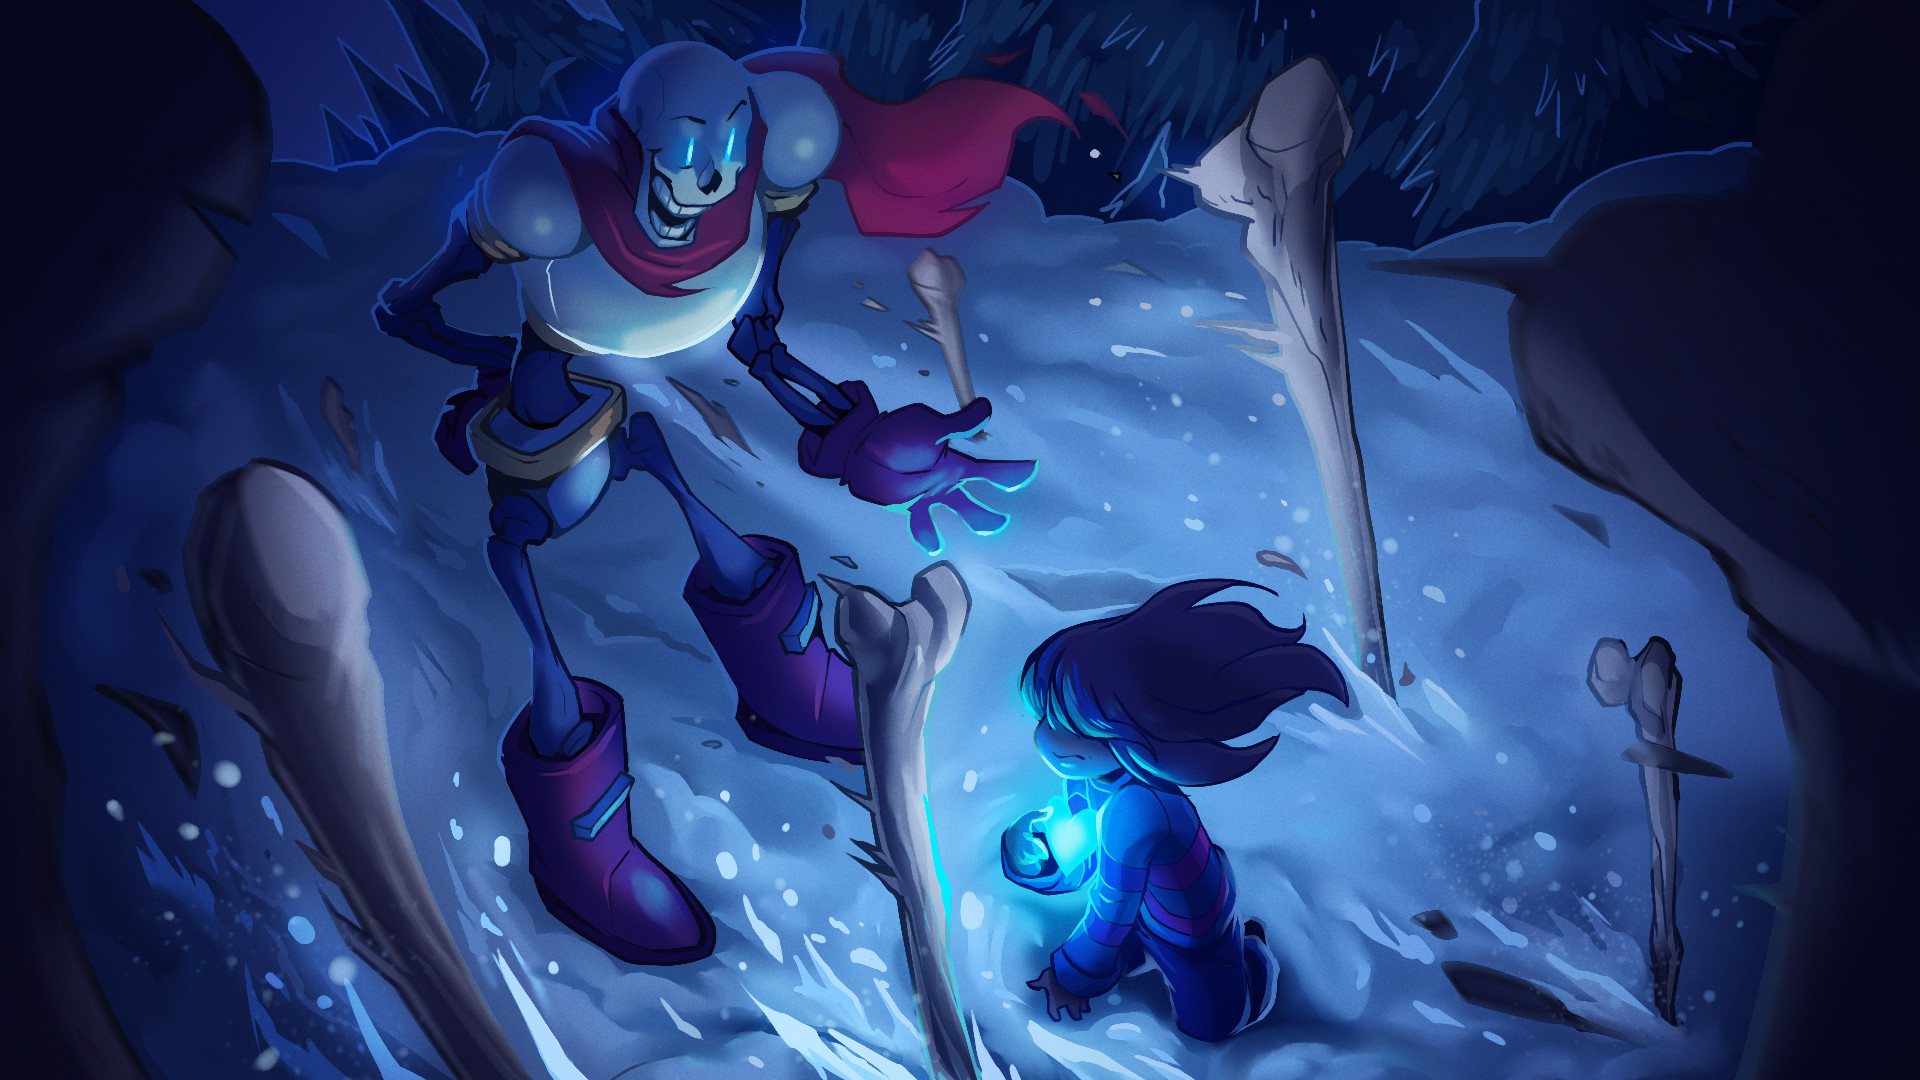 Undertale Wallpapers (boss battles of genocide, neutral, and pacifist  endings) – Album on Imgur